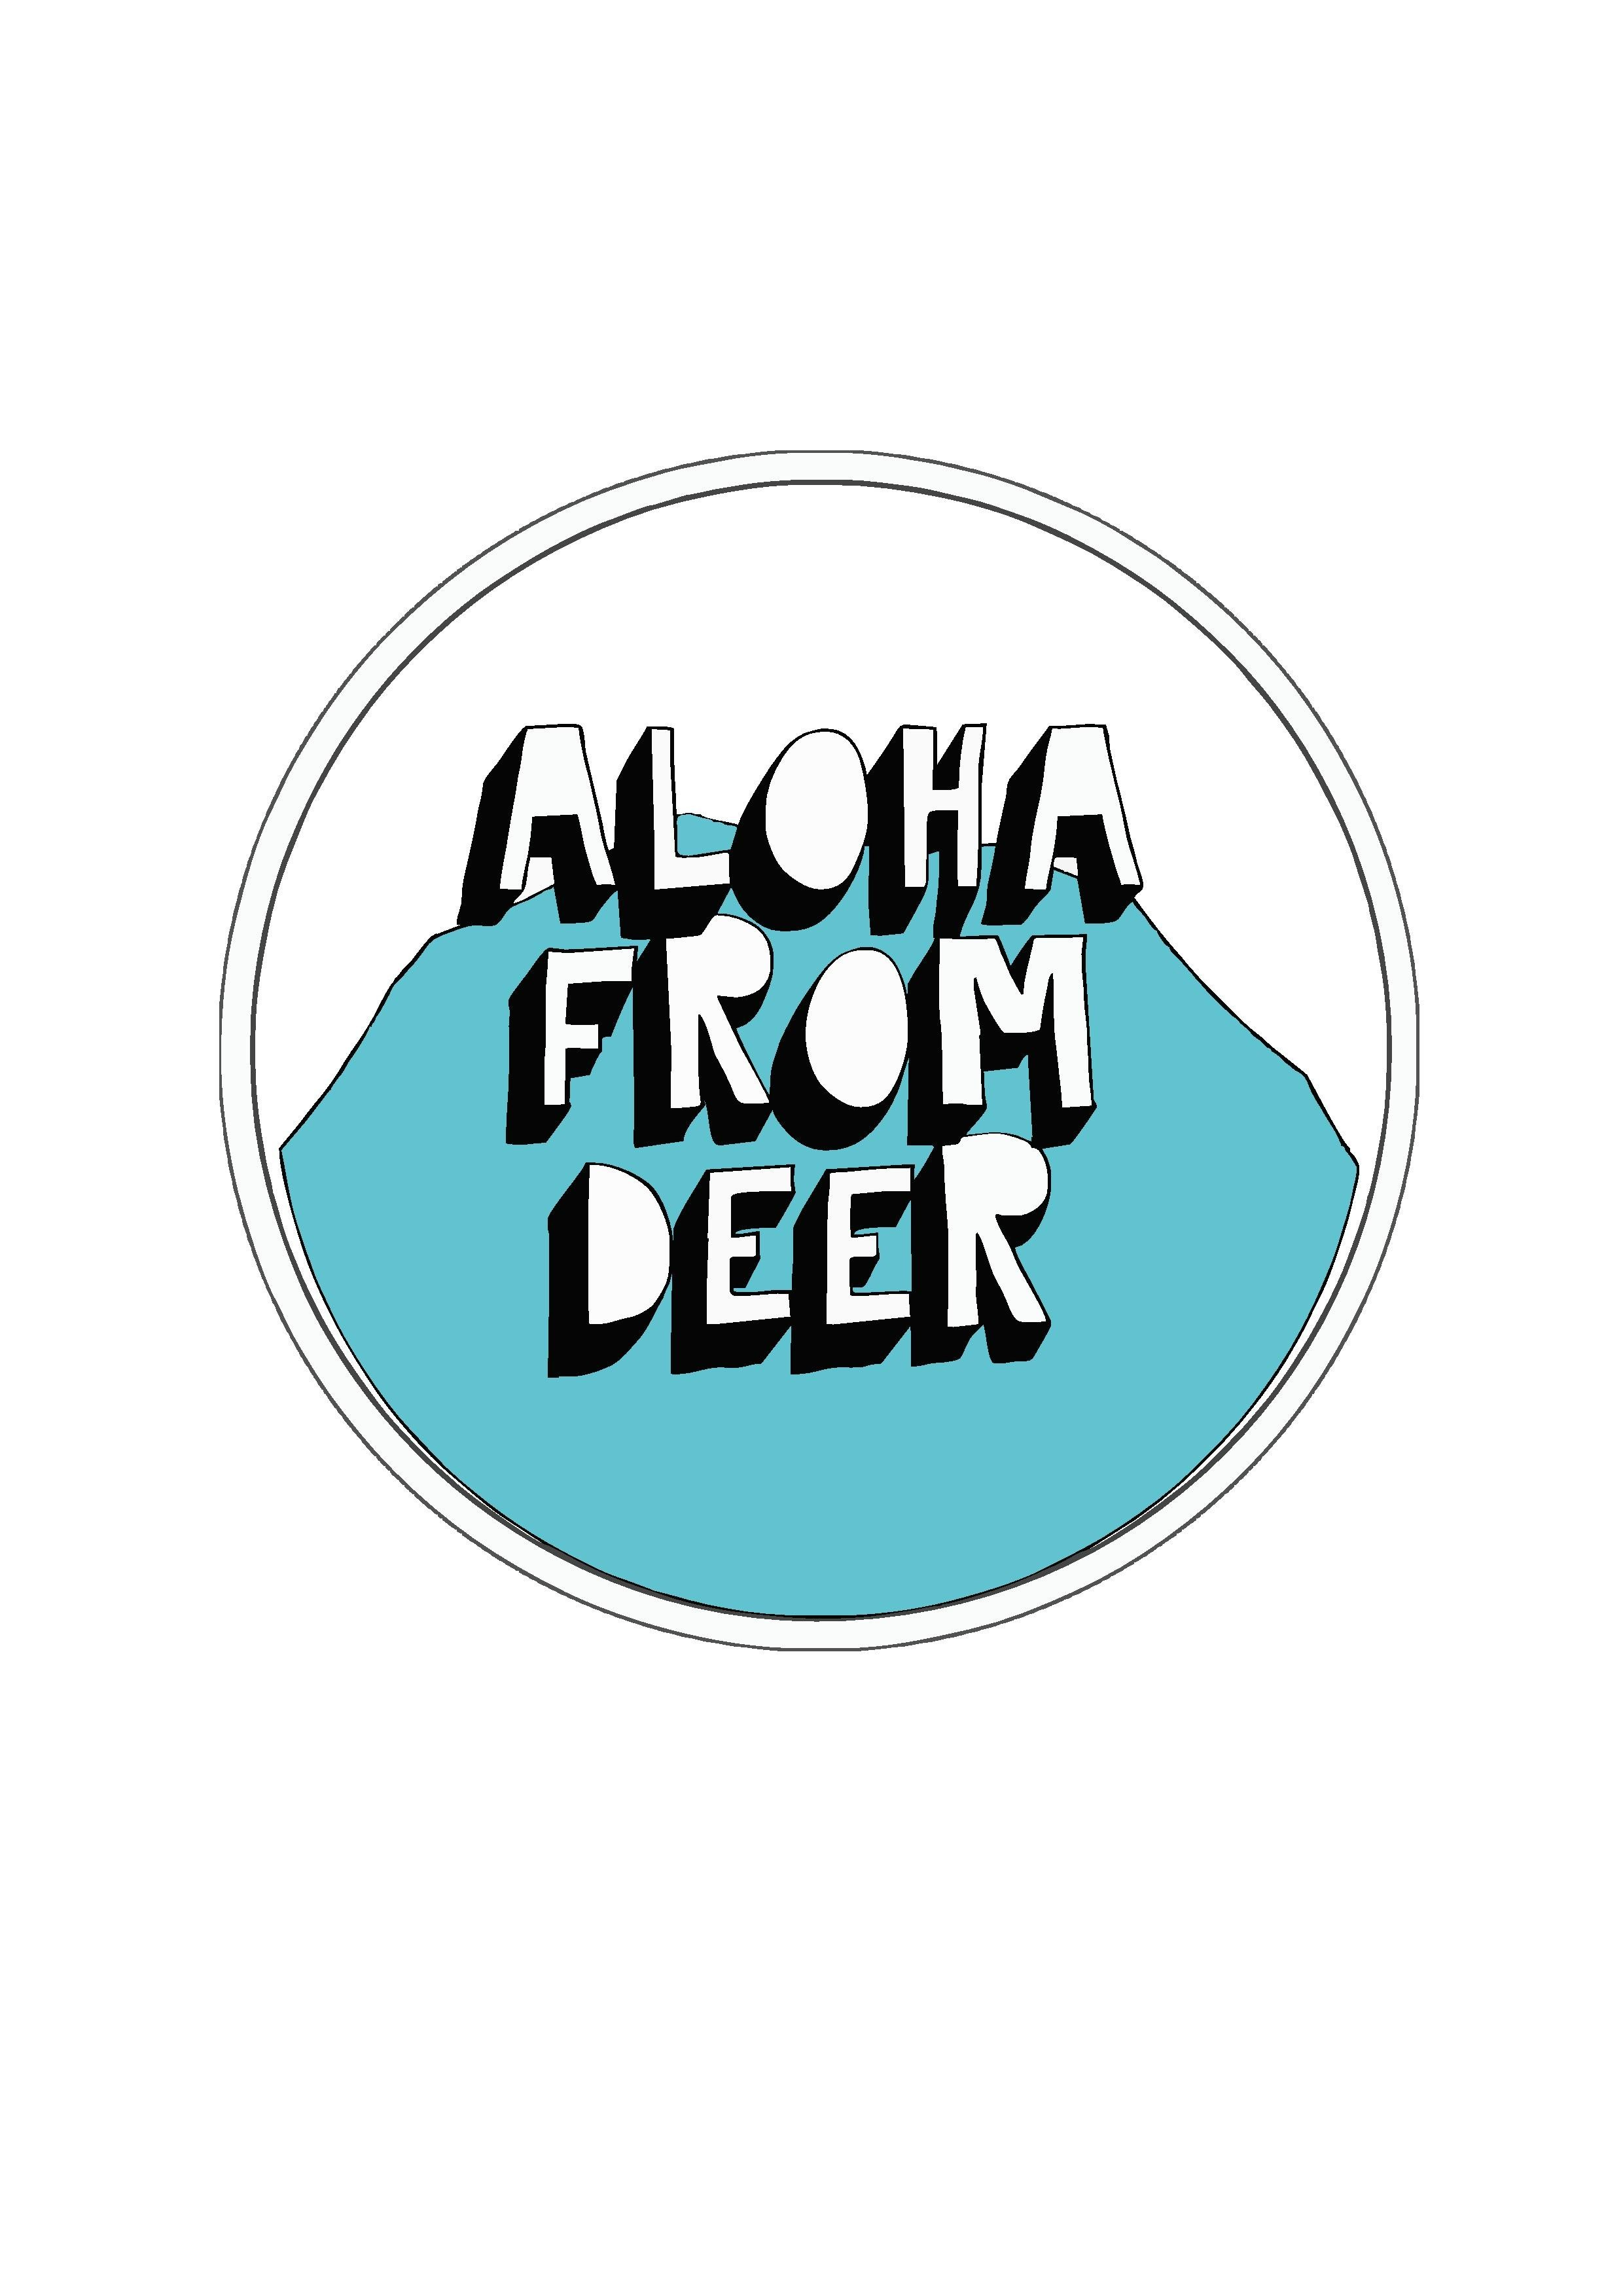 Aloha from deer   NOT JUST A LABEL